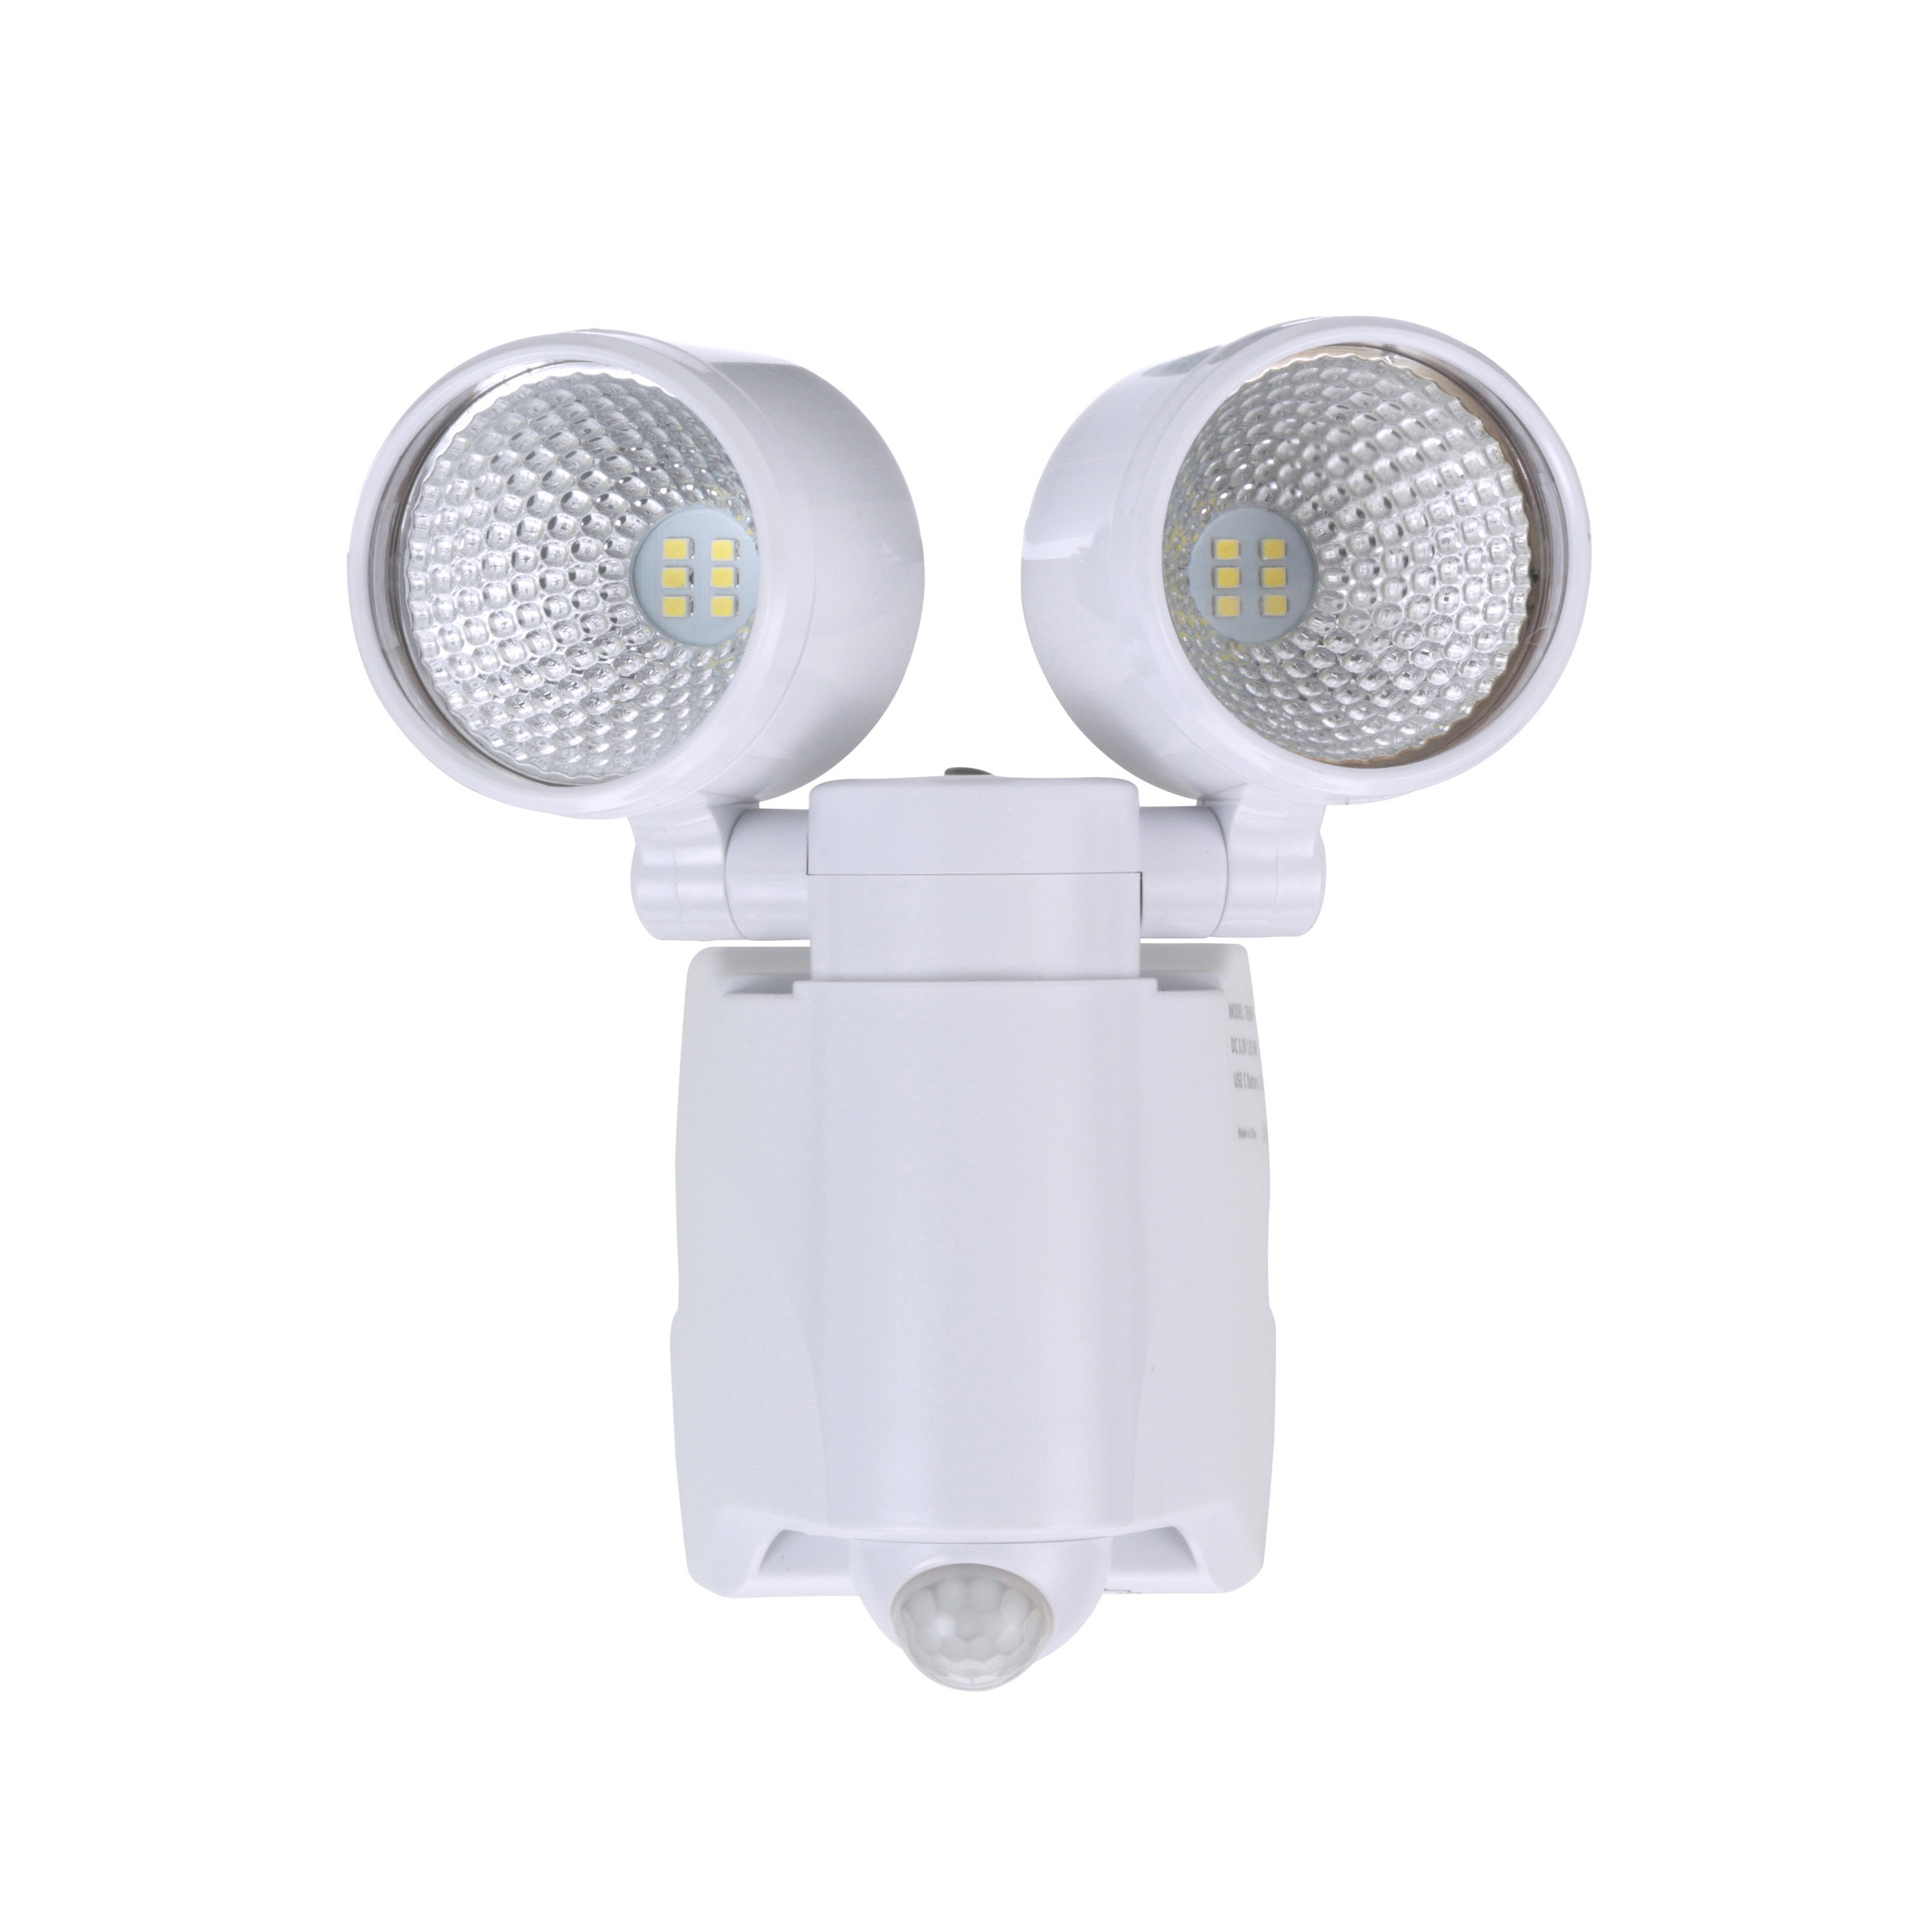 Brinku0027s LED Battery Operated Portable Motion Security Light, White